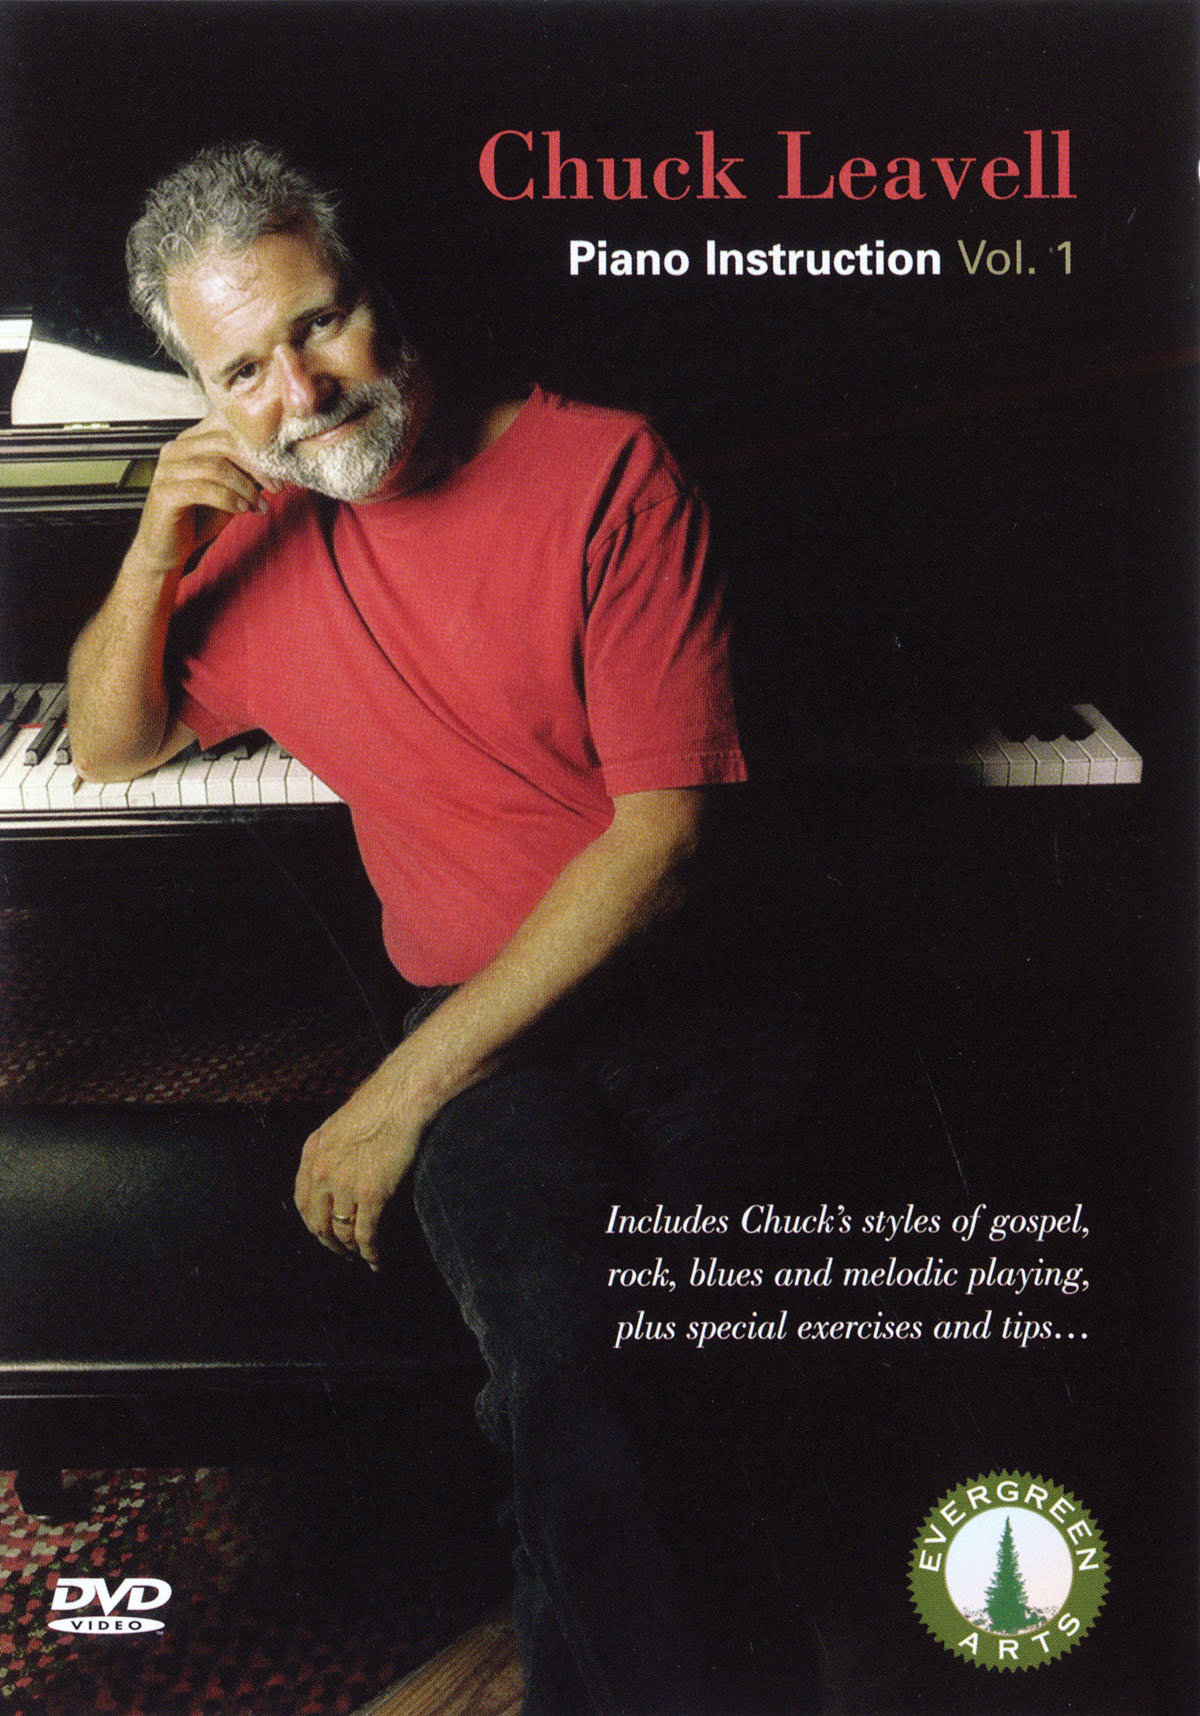 Chuck Leavell: Chuck Leavell - Piano Instruction Vol. 1: Piano: DVD